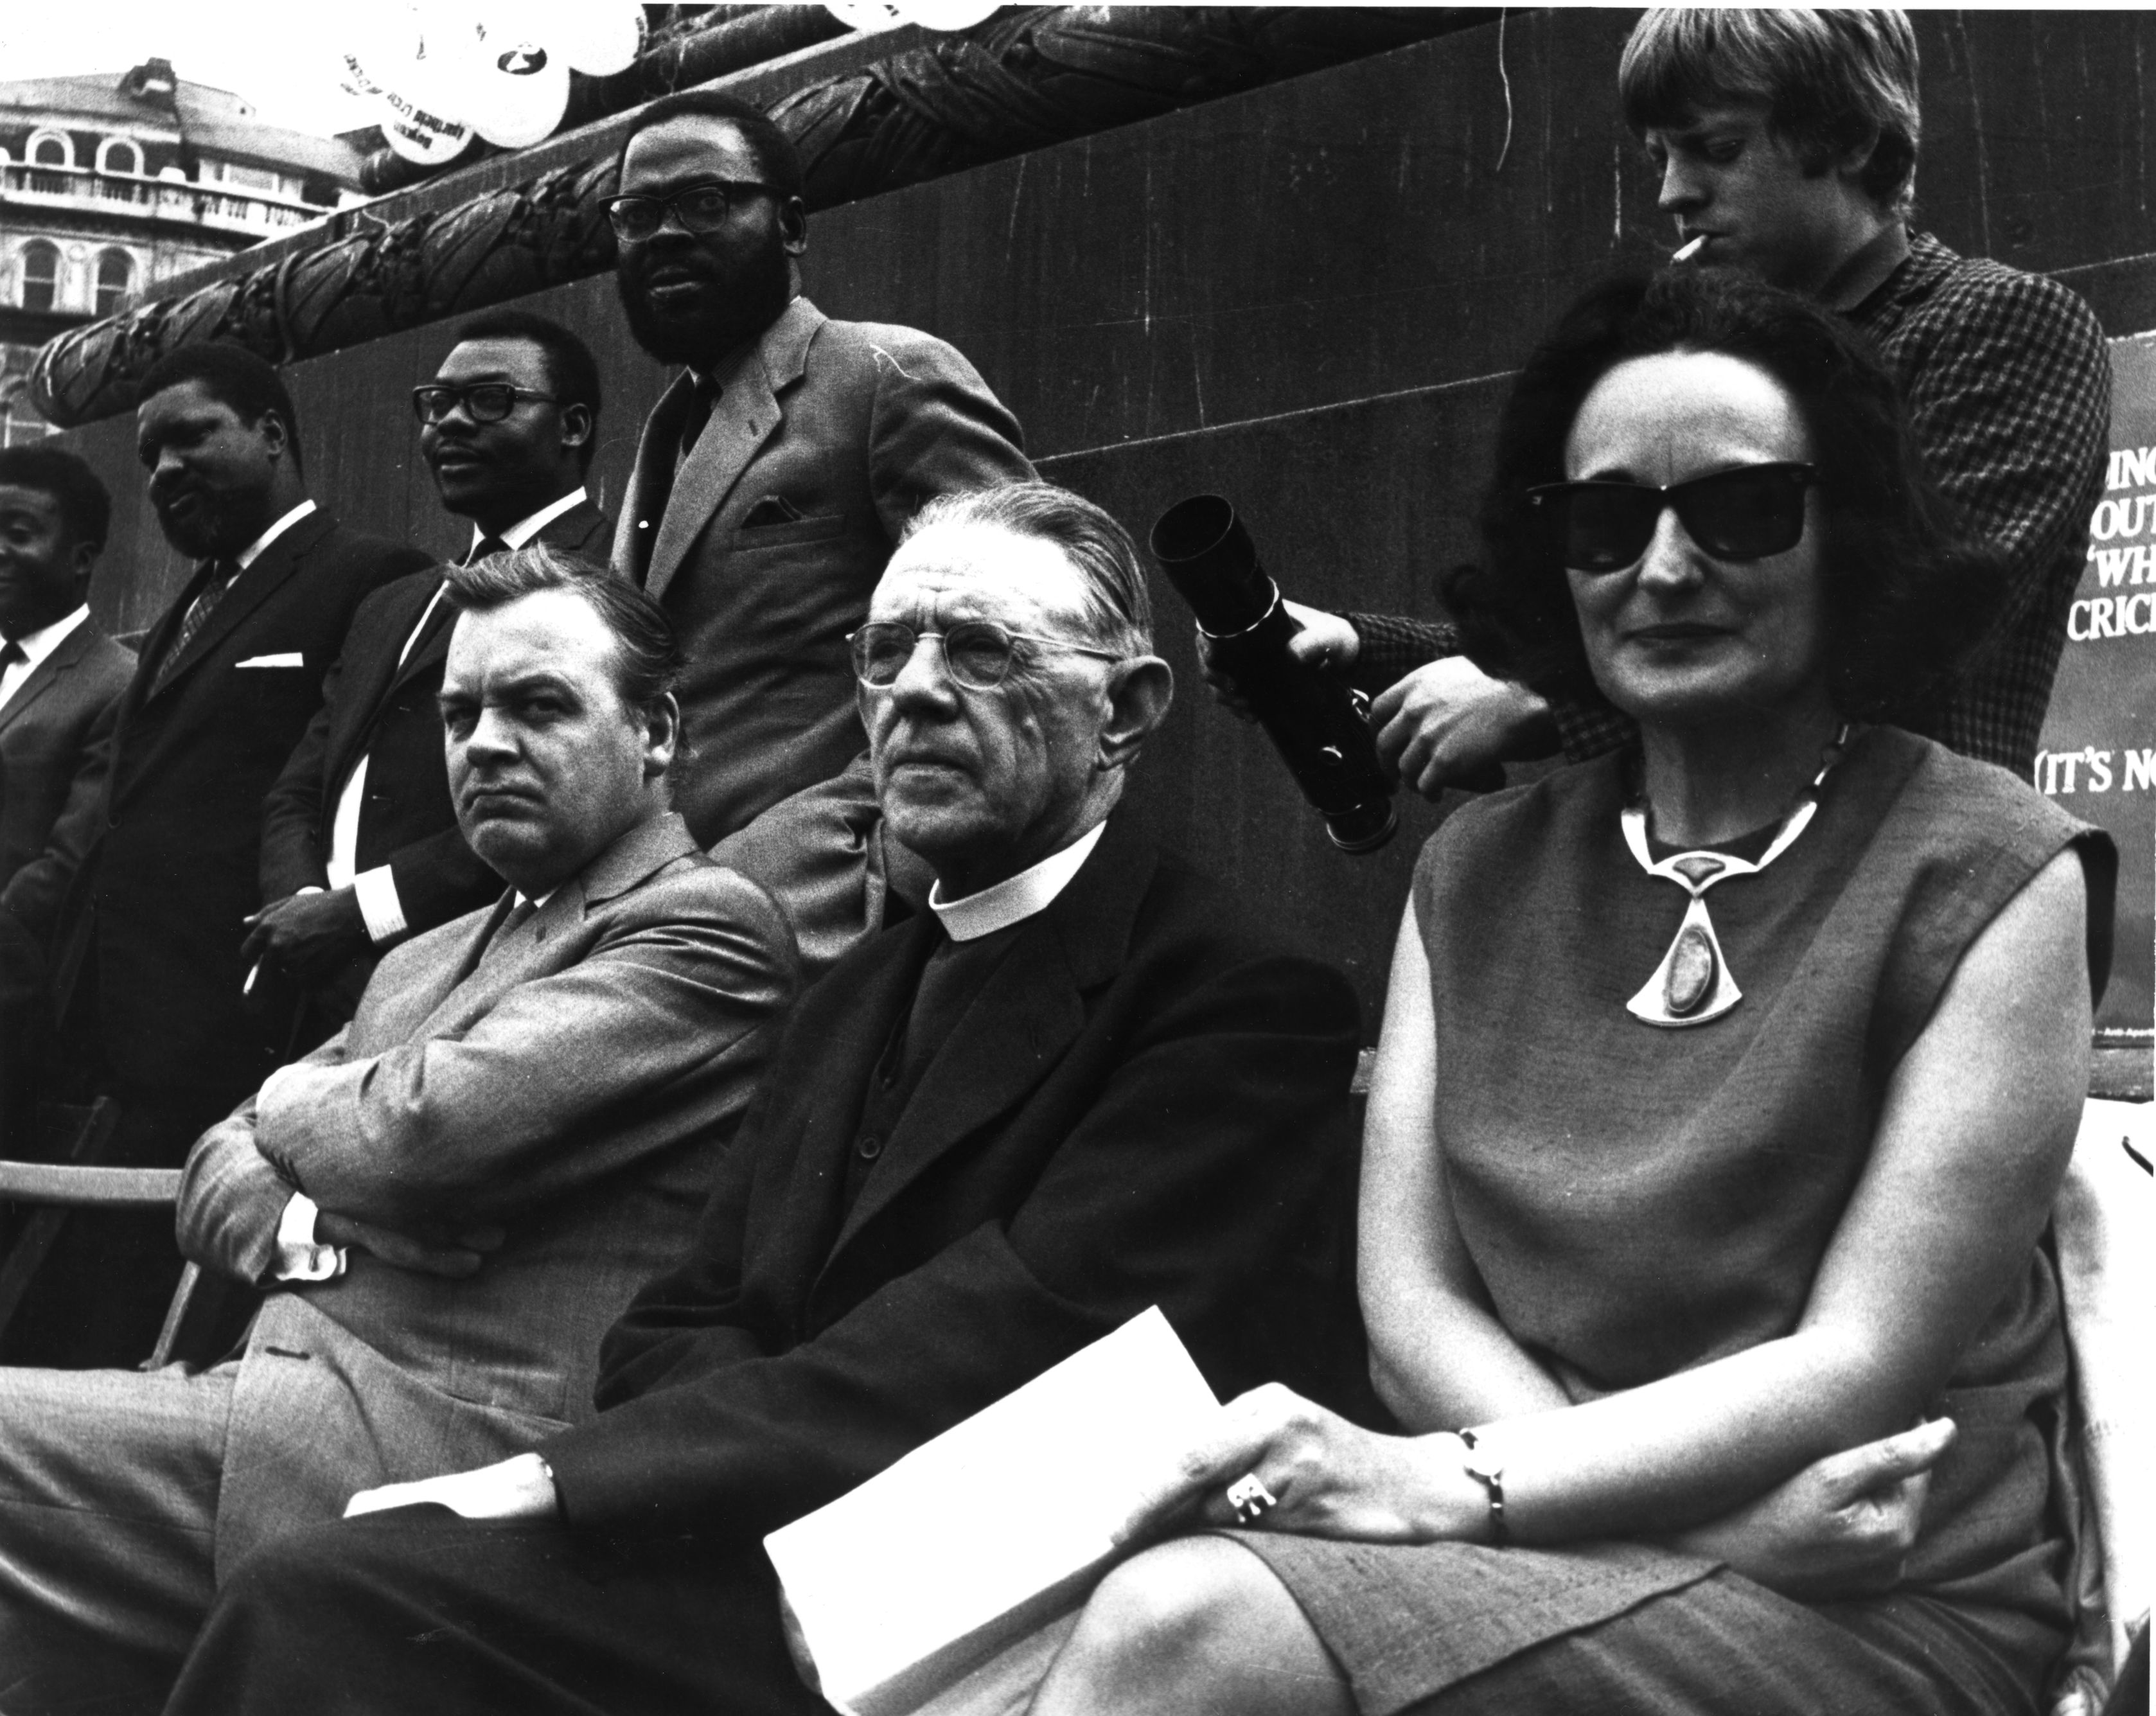 Journalist Ruth First, pictured right, at Anti-Apartheid Movement's freedom day rally in Trafalgar Square, London in 1965. Also pictured are actor Patrick Wymark (left) and Bishop Reeves (middle). (Photo by Keystone/Getty Images)